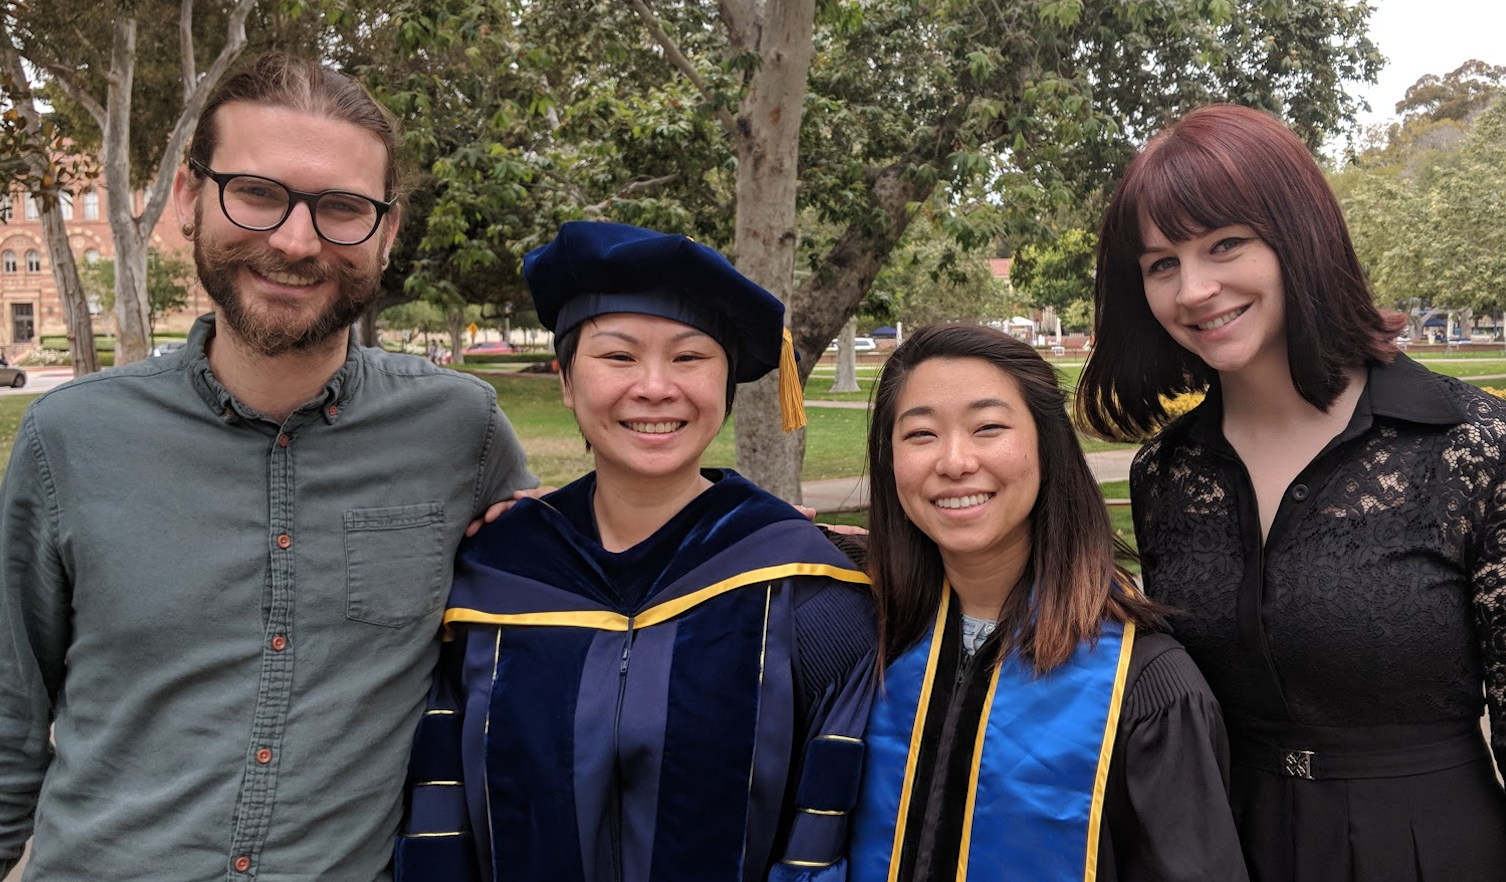 PIA Presidents Jeffrey Bye (2012-2014), Joey Essoe (2014-2016), Tawny Tsang (2016-2018), and Stacy Shaw (2018 - present).